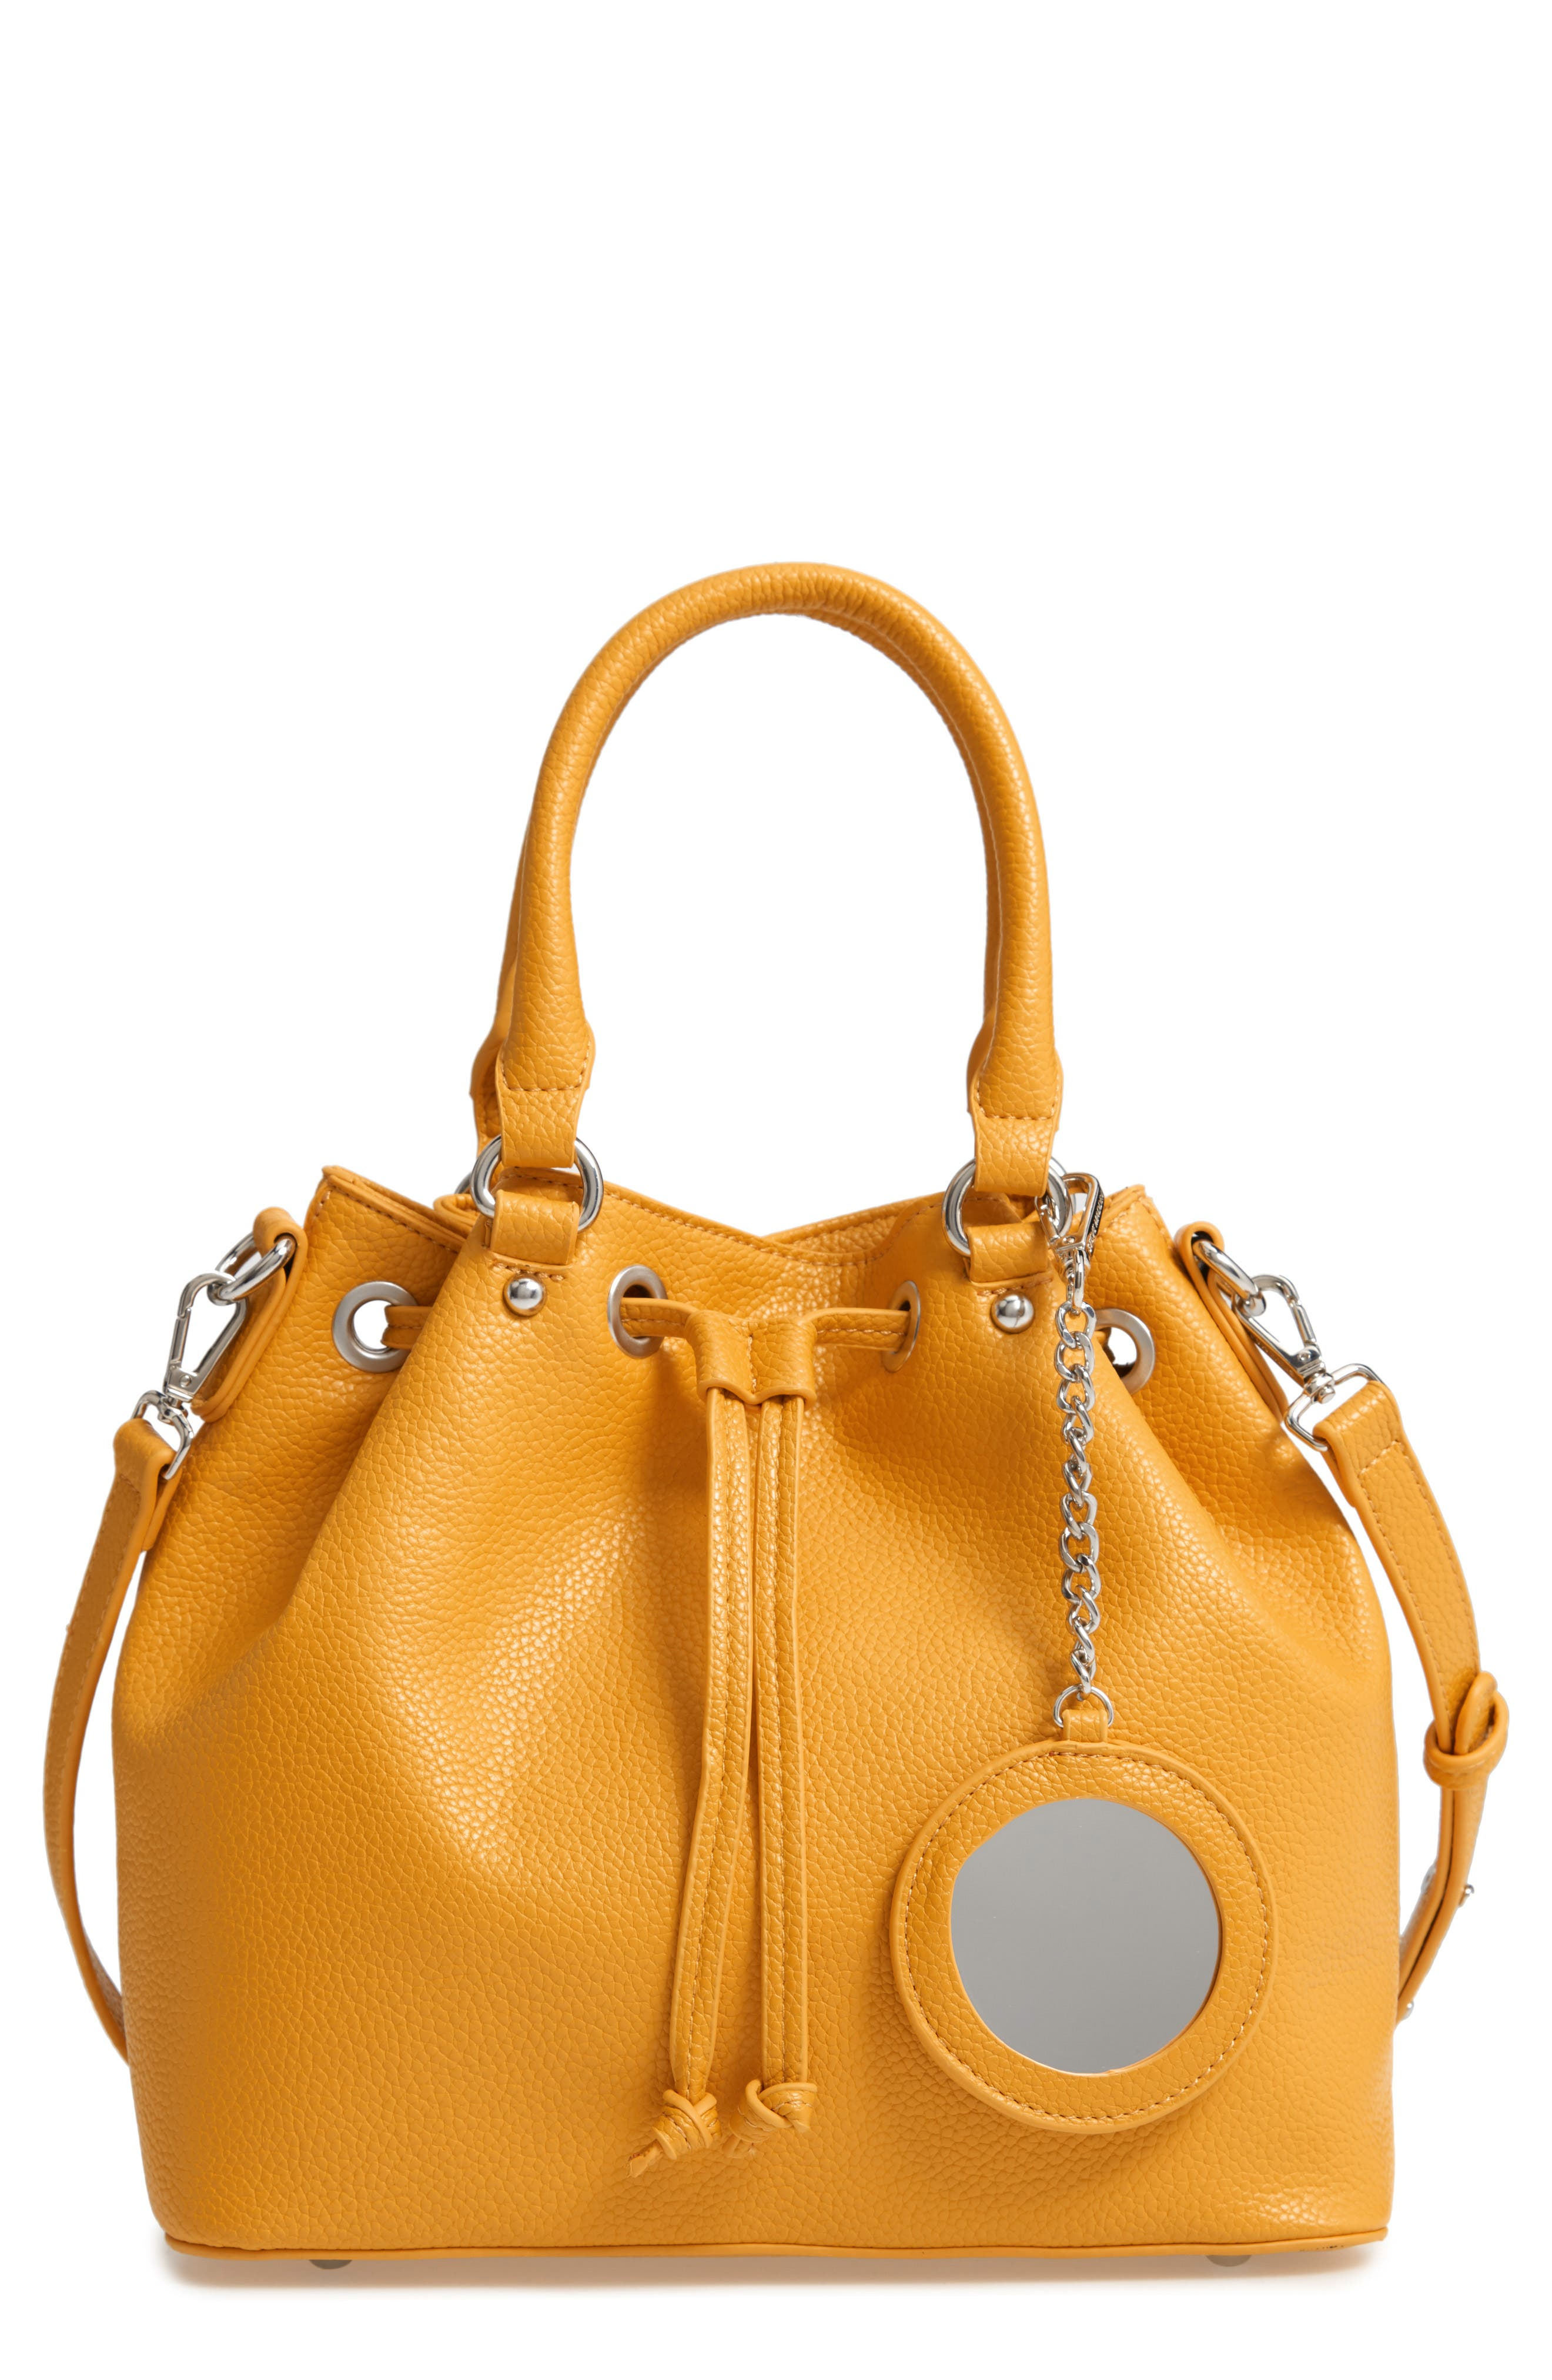 Steve Madden Baudrie Faux Leather Satchel Yellow